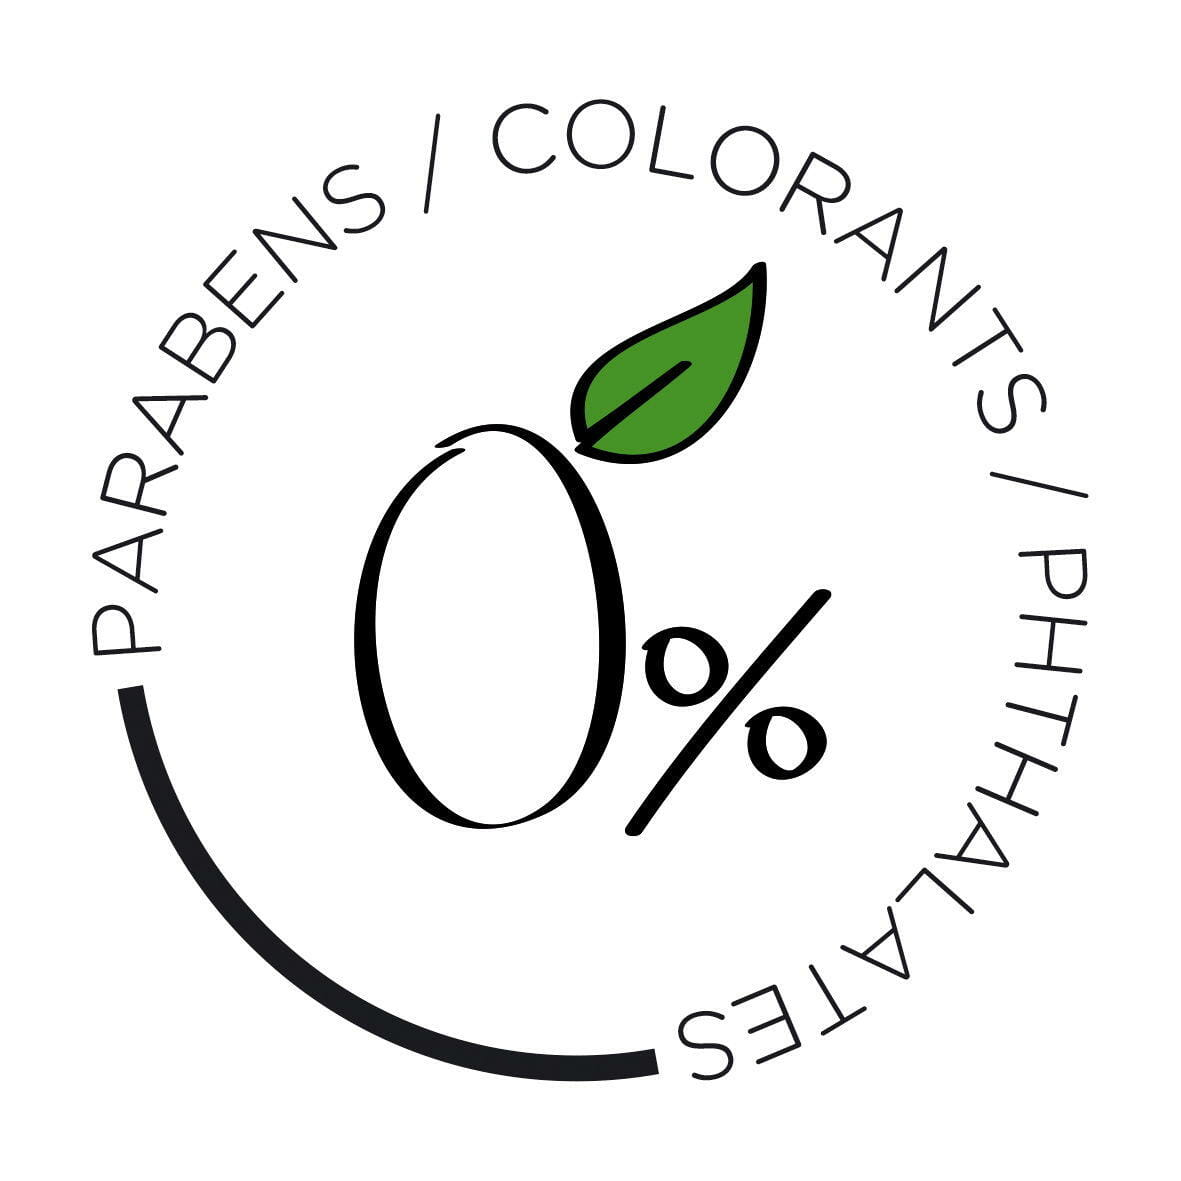 0% Parabens Colorants Phthalates